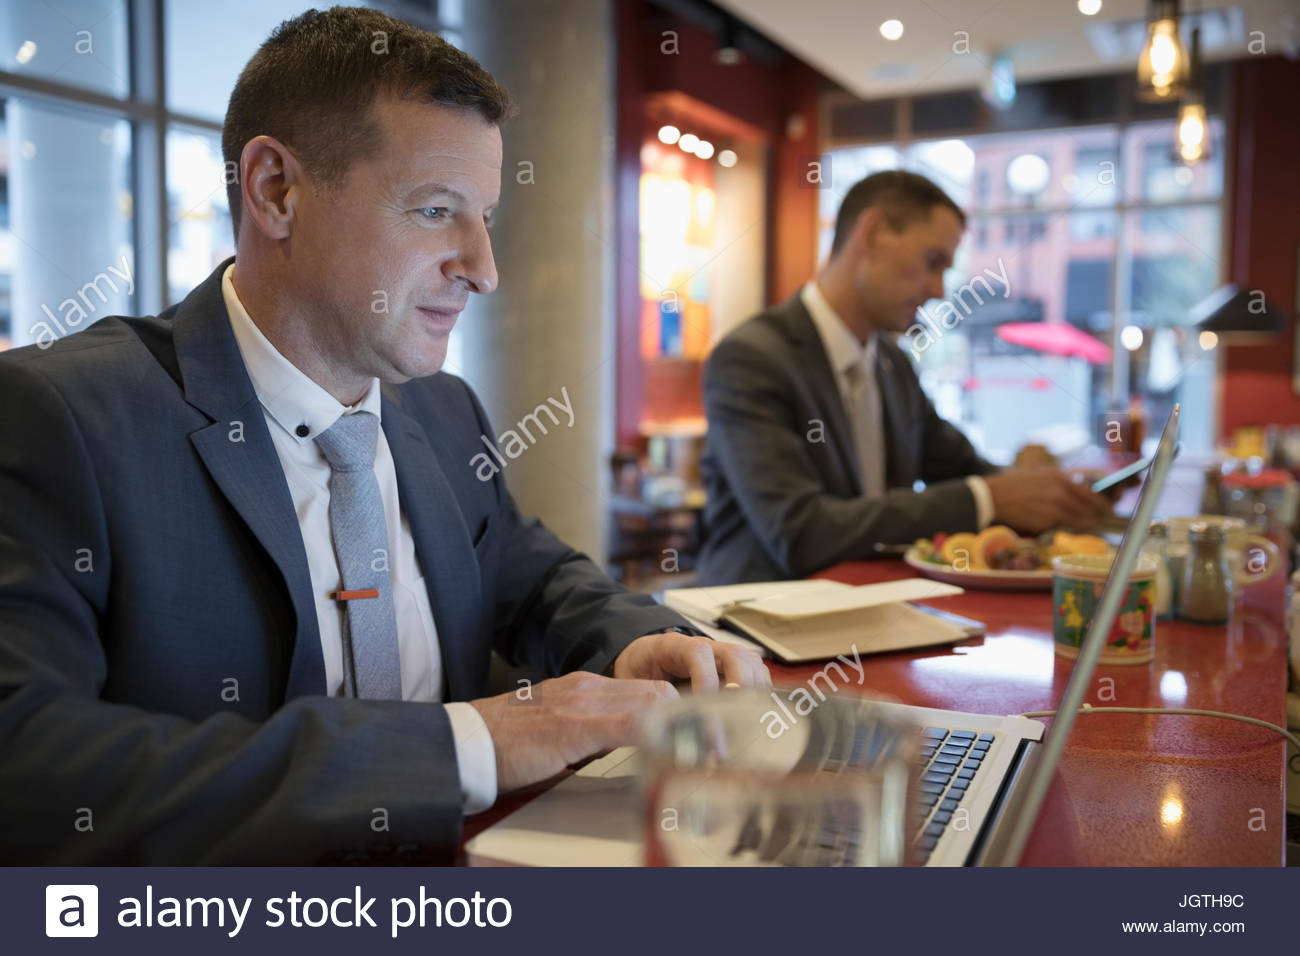 Businessman using laptop at diner counter - Stock Image